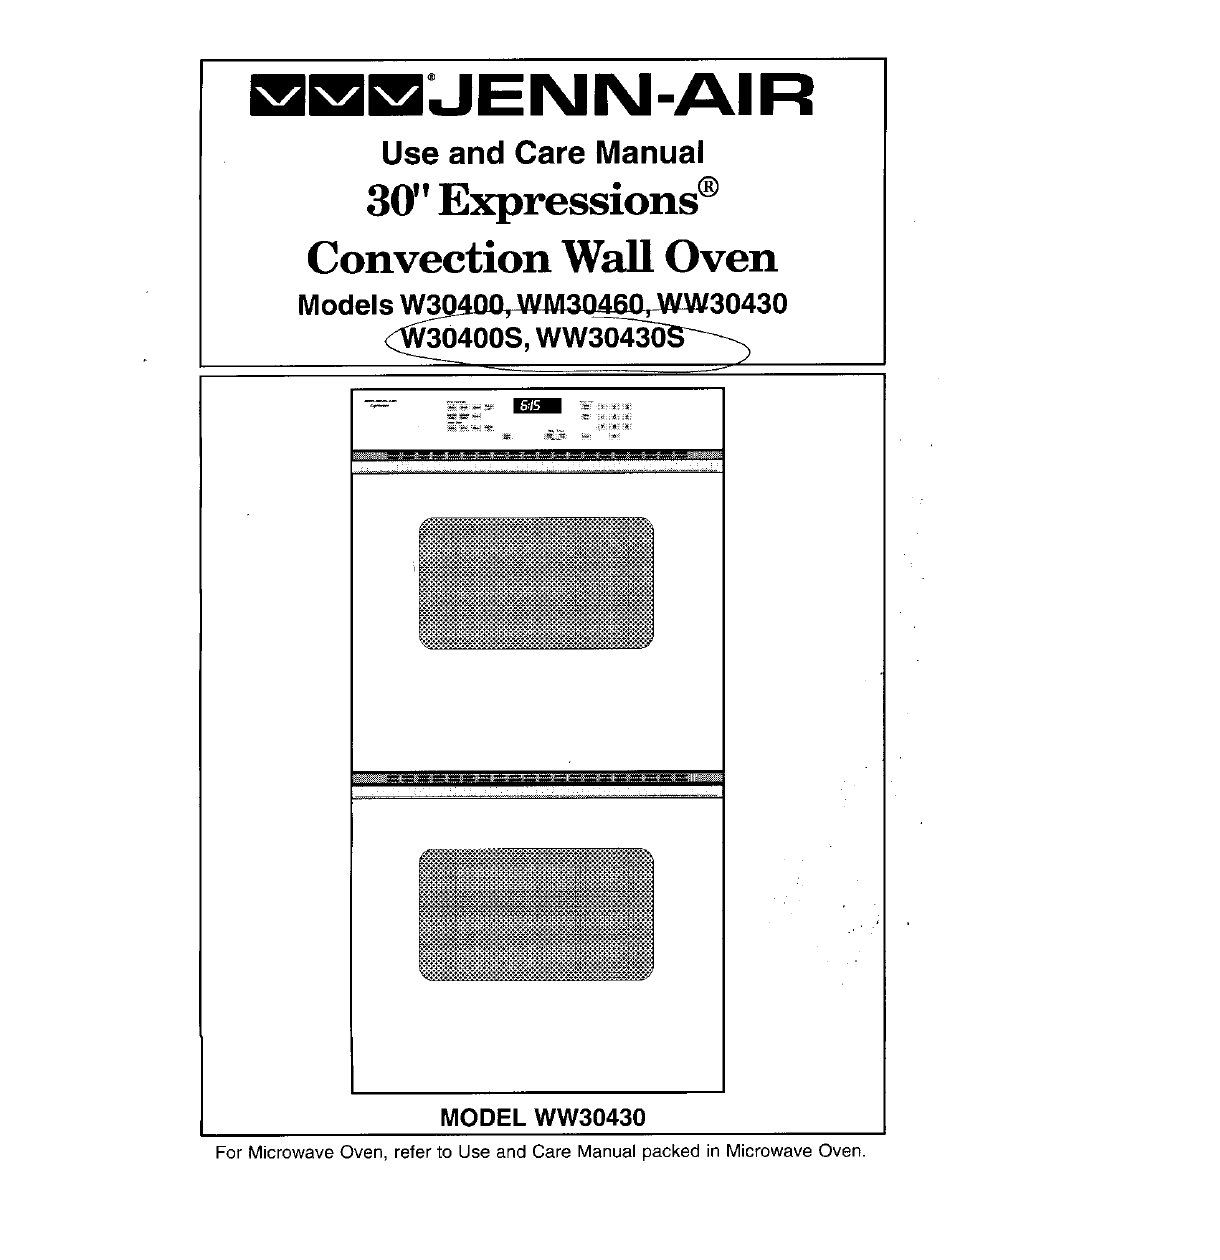 jenn air convection oven w30400 user guide manualsonline com rh kitchen manualsonline com jenn-air dishwasher manual troubleshooting Jenn-Air Service Manual